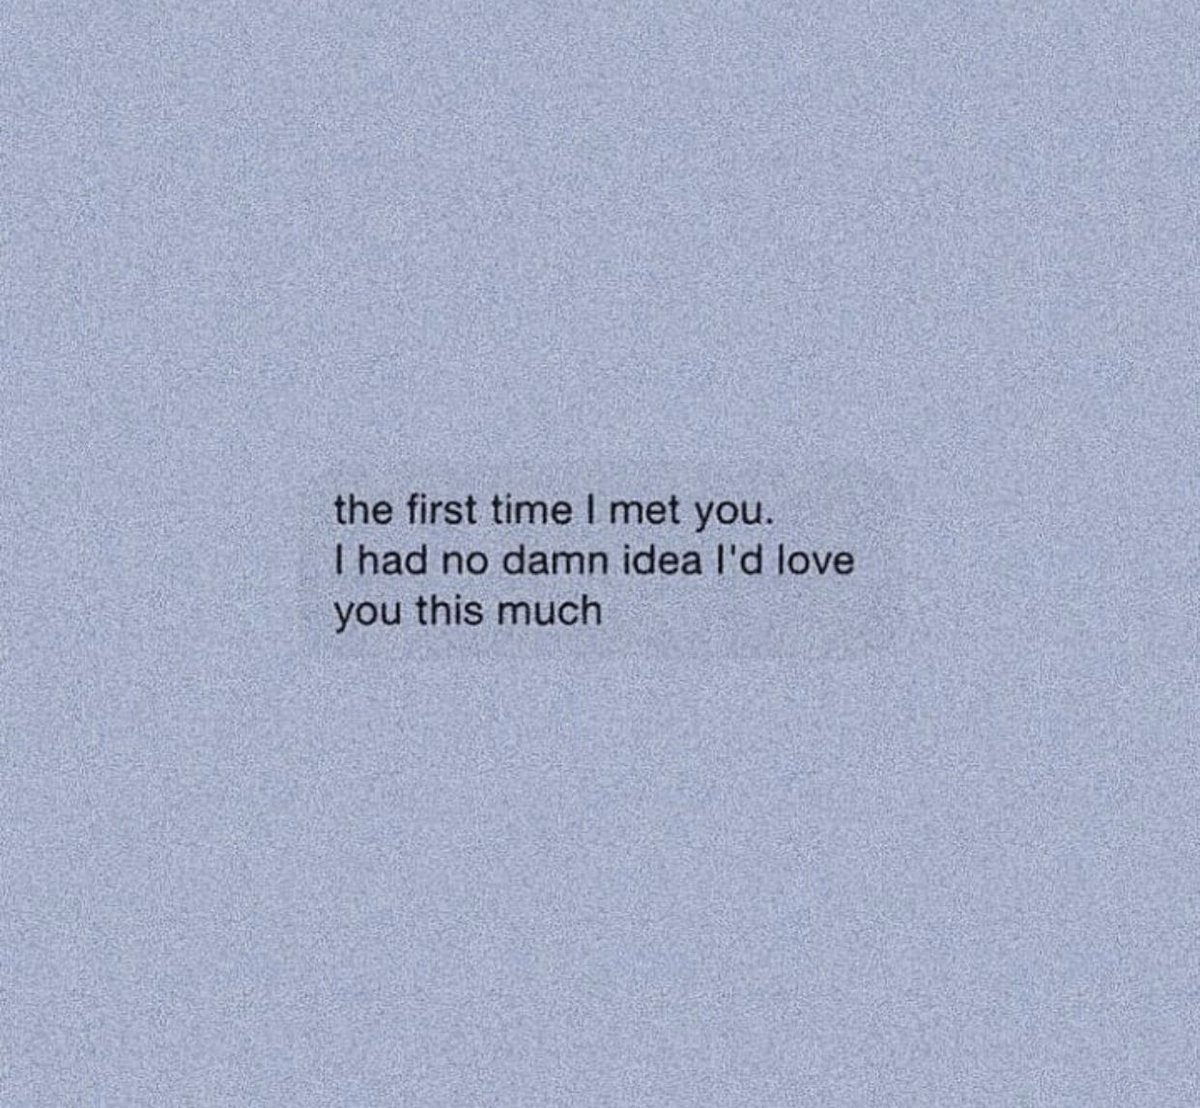 when i first met you poem